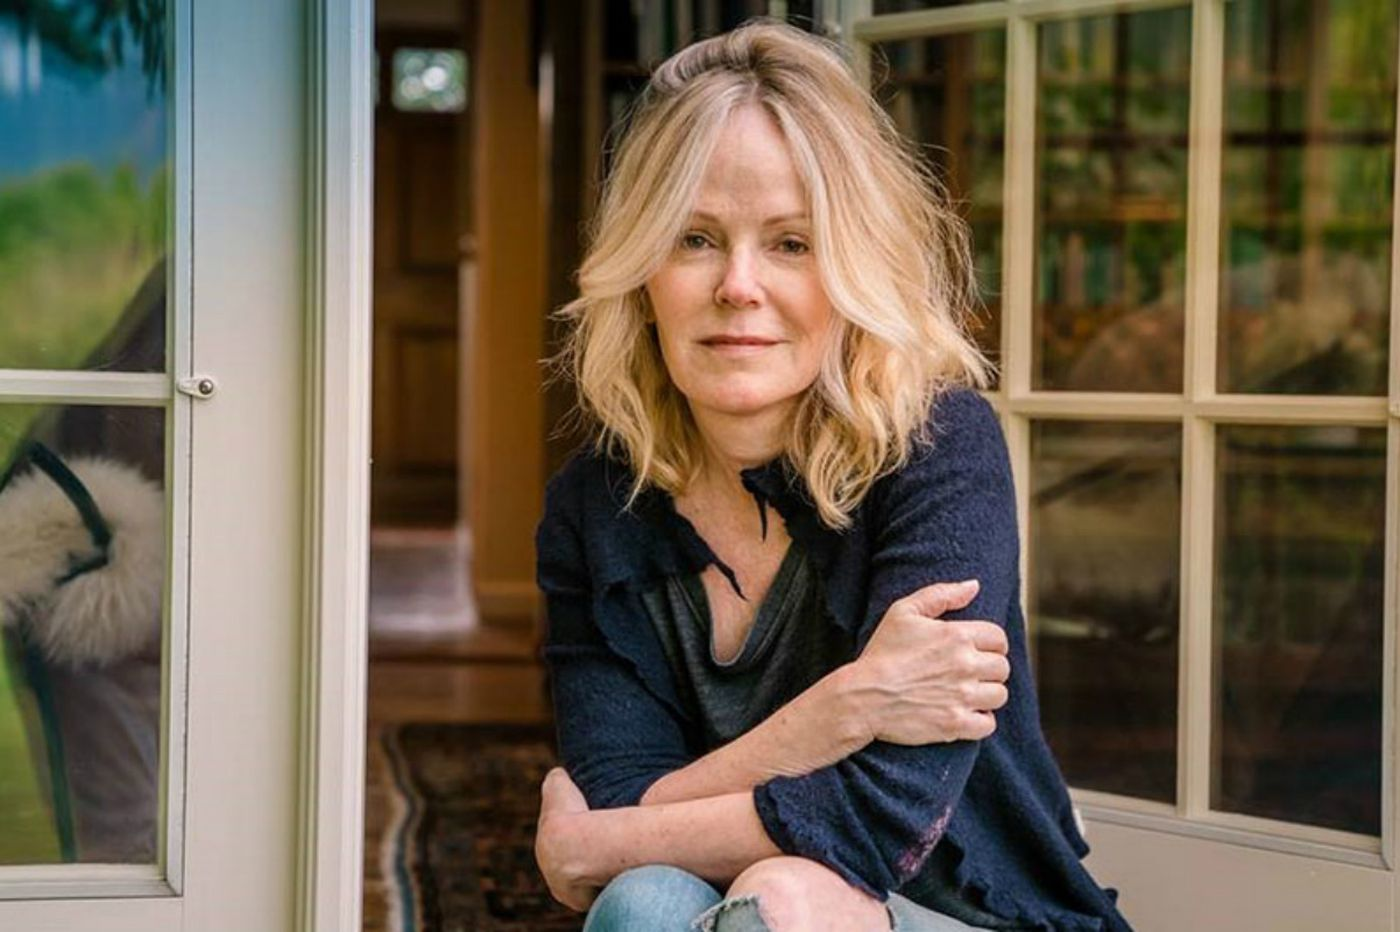 A DNA test told 'Inheritance' author Dani Shapiro her father was a stranger. Then she rediscovered him.